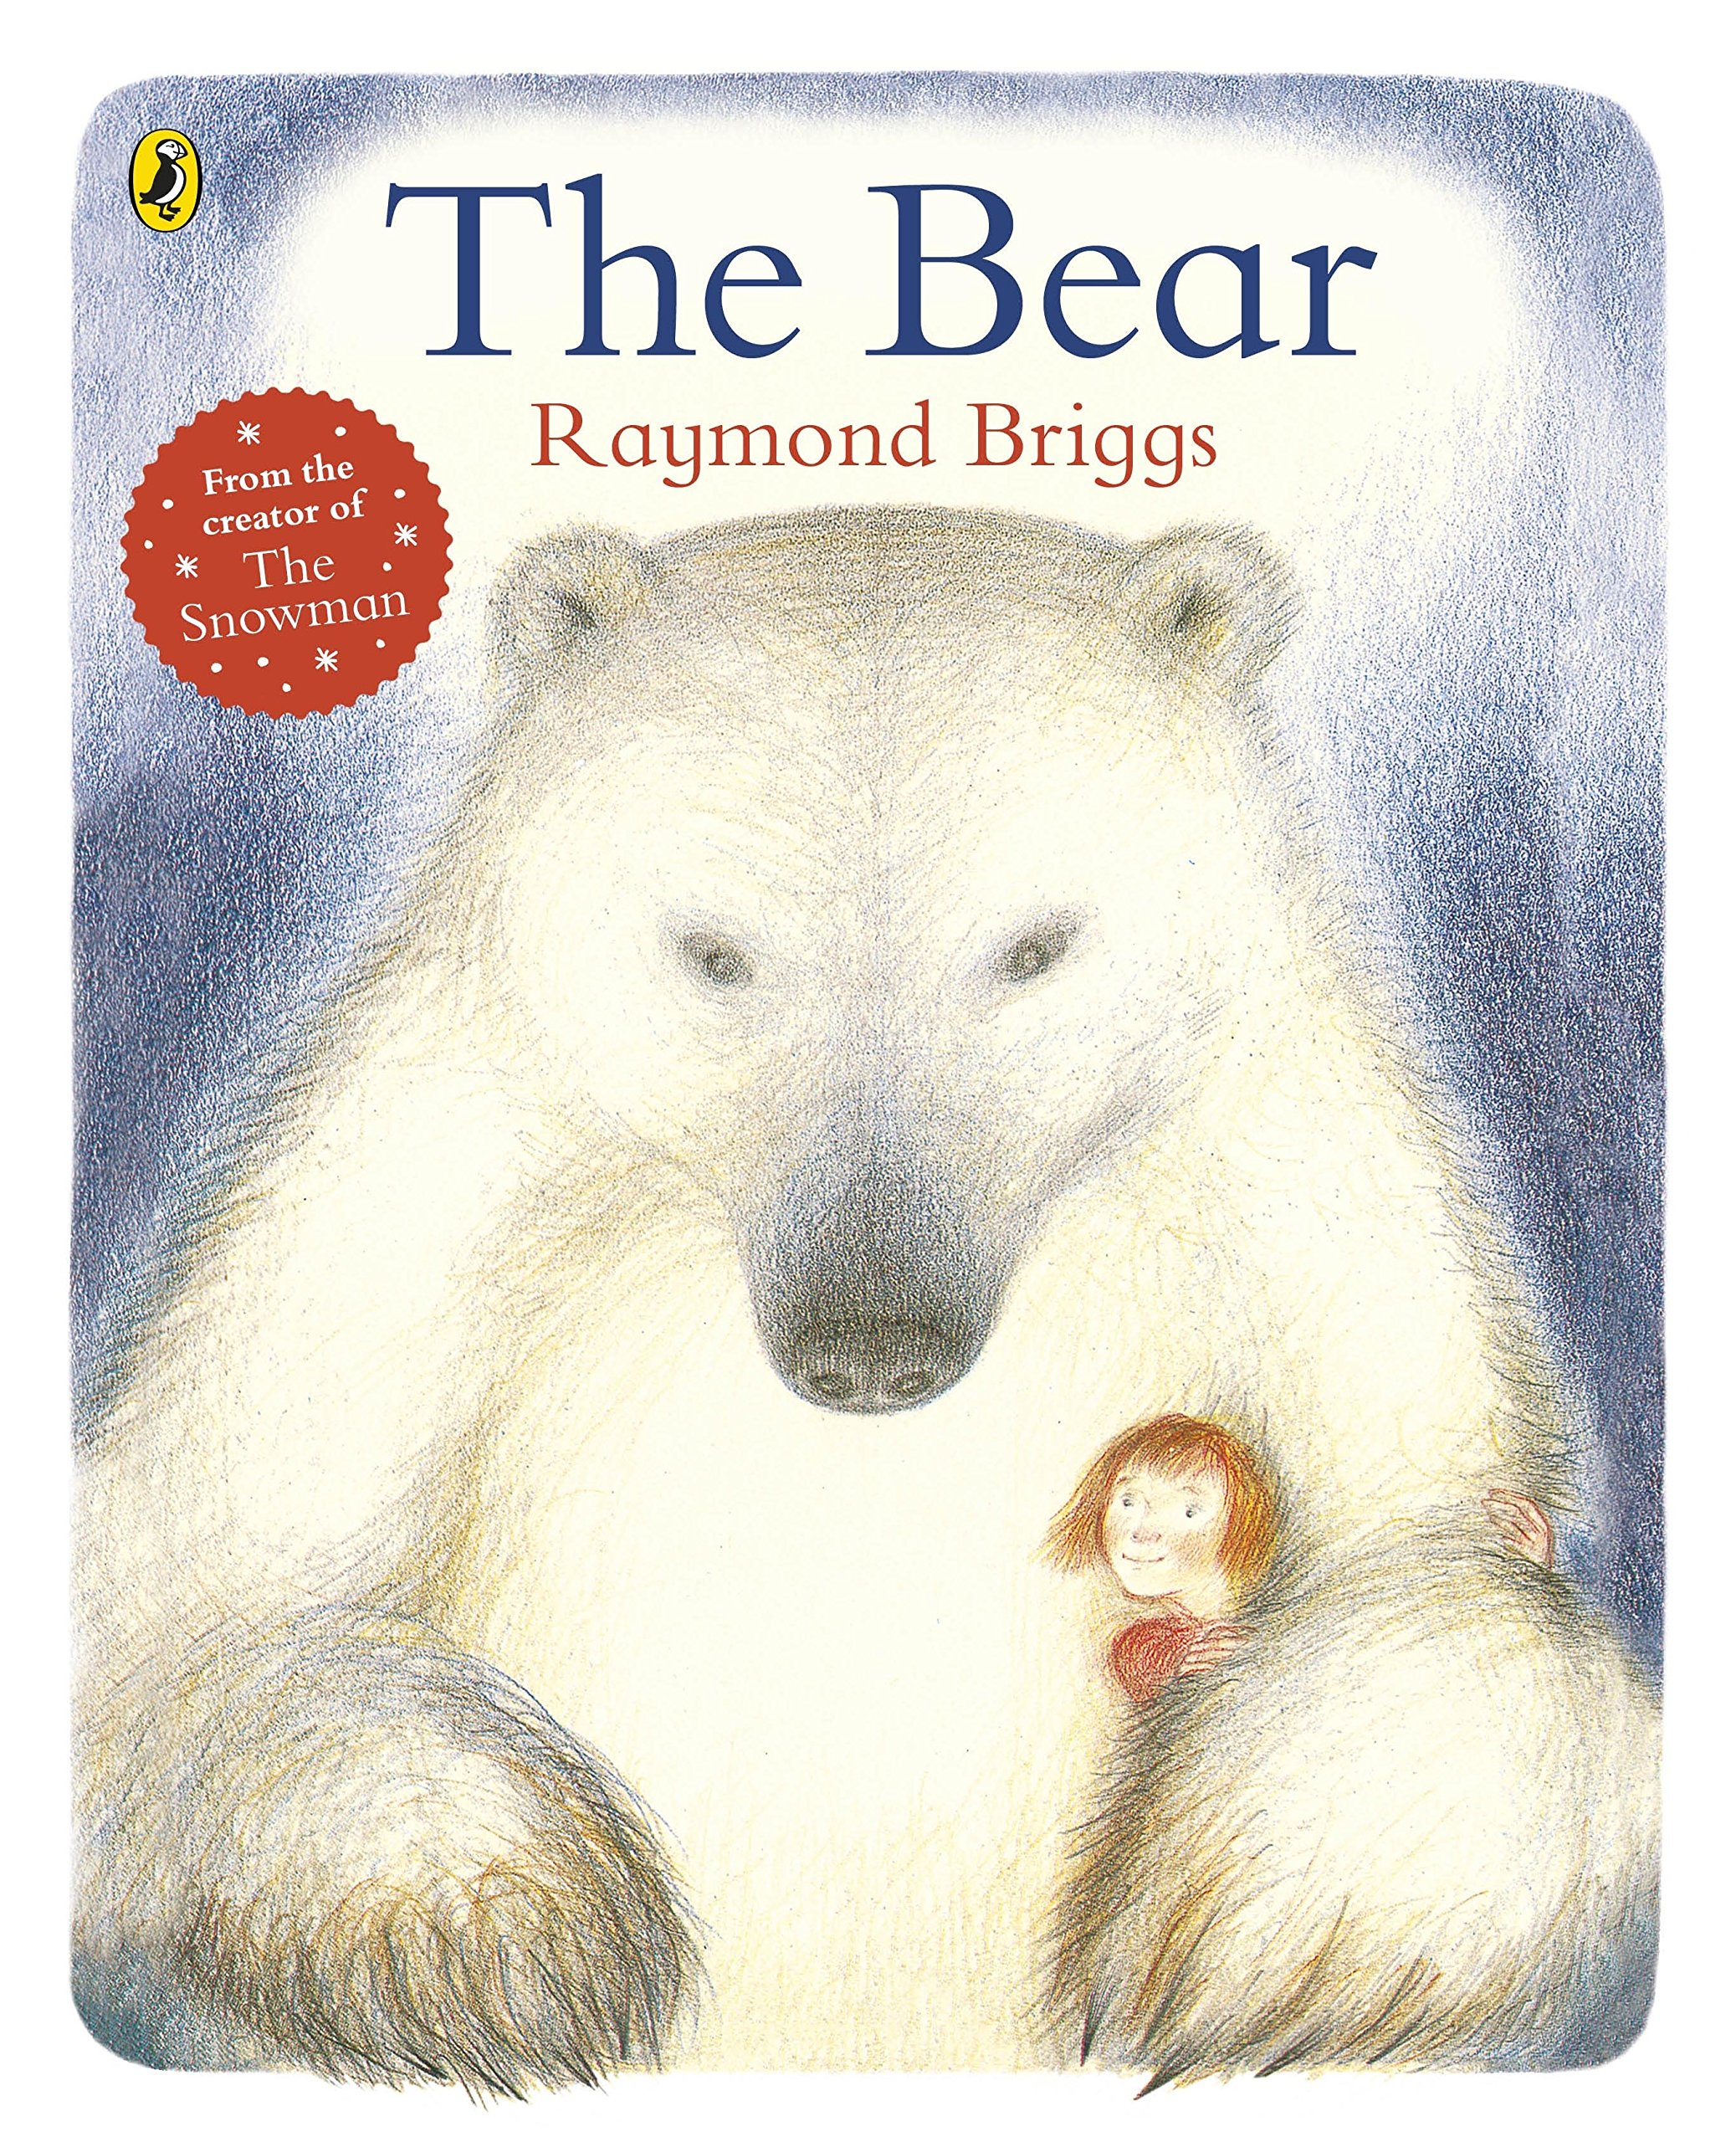 Image result for Raymond briggs the bear